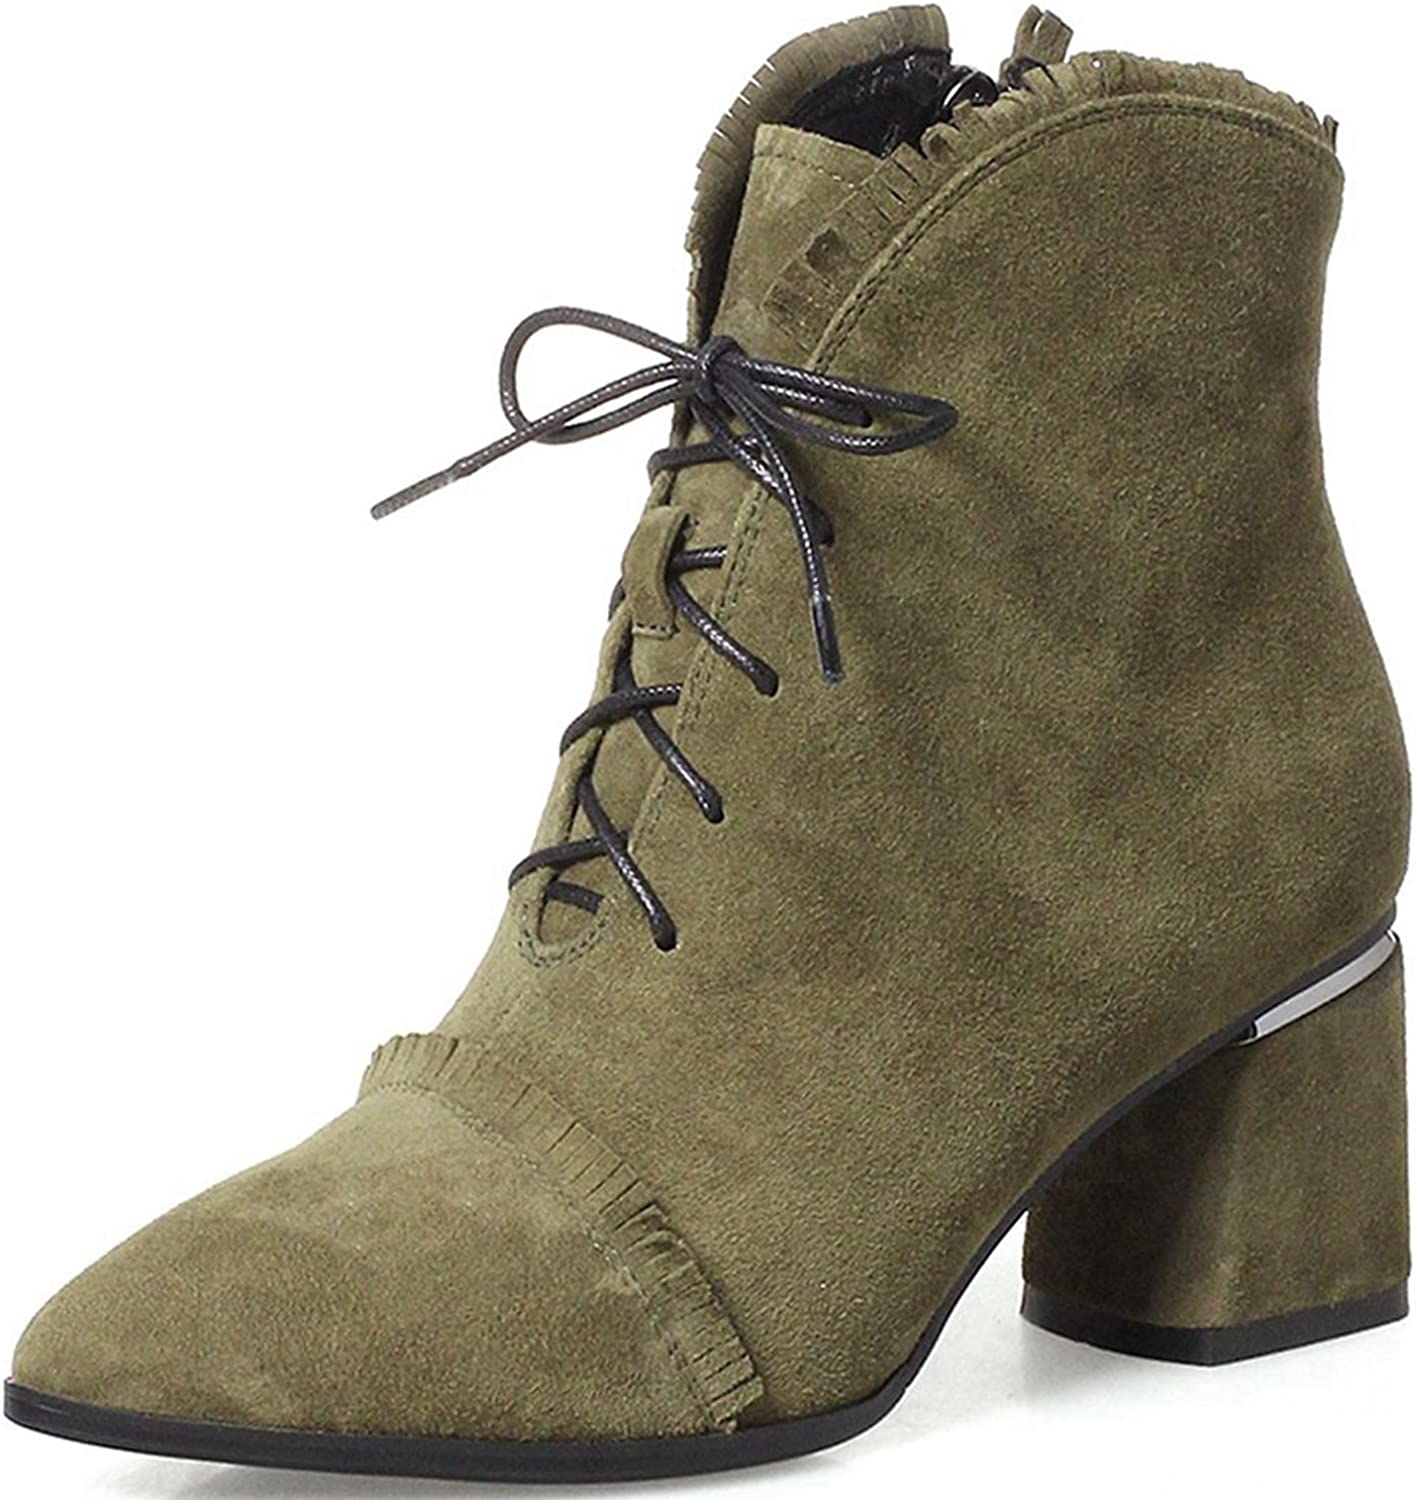 VIMISAOI Women's Tassel Suede Pointed Toe Lace-up Ankle Boots